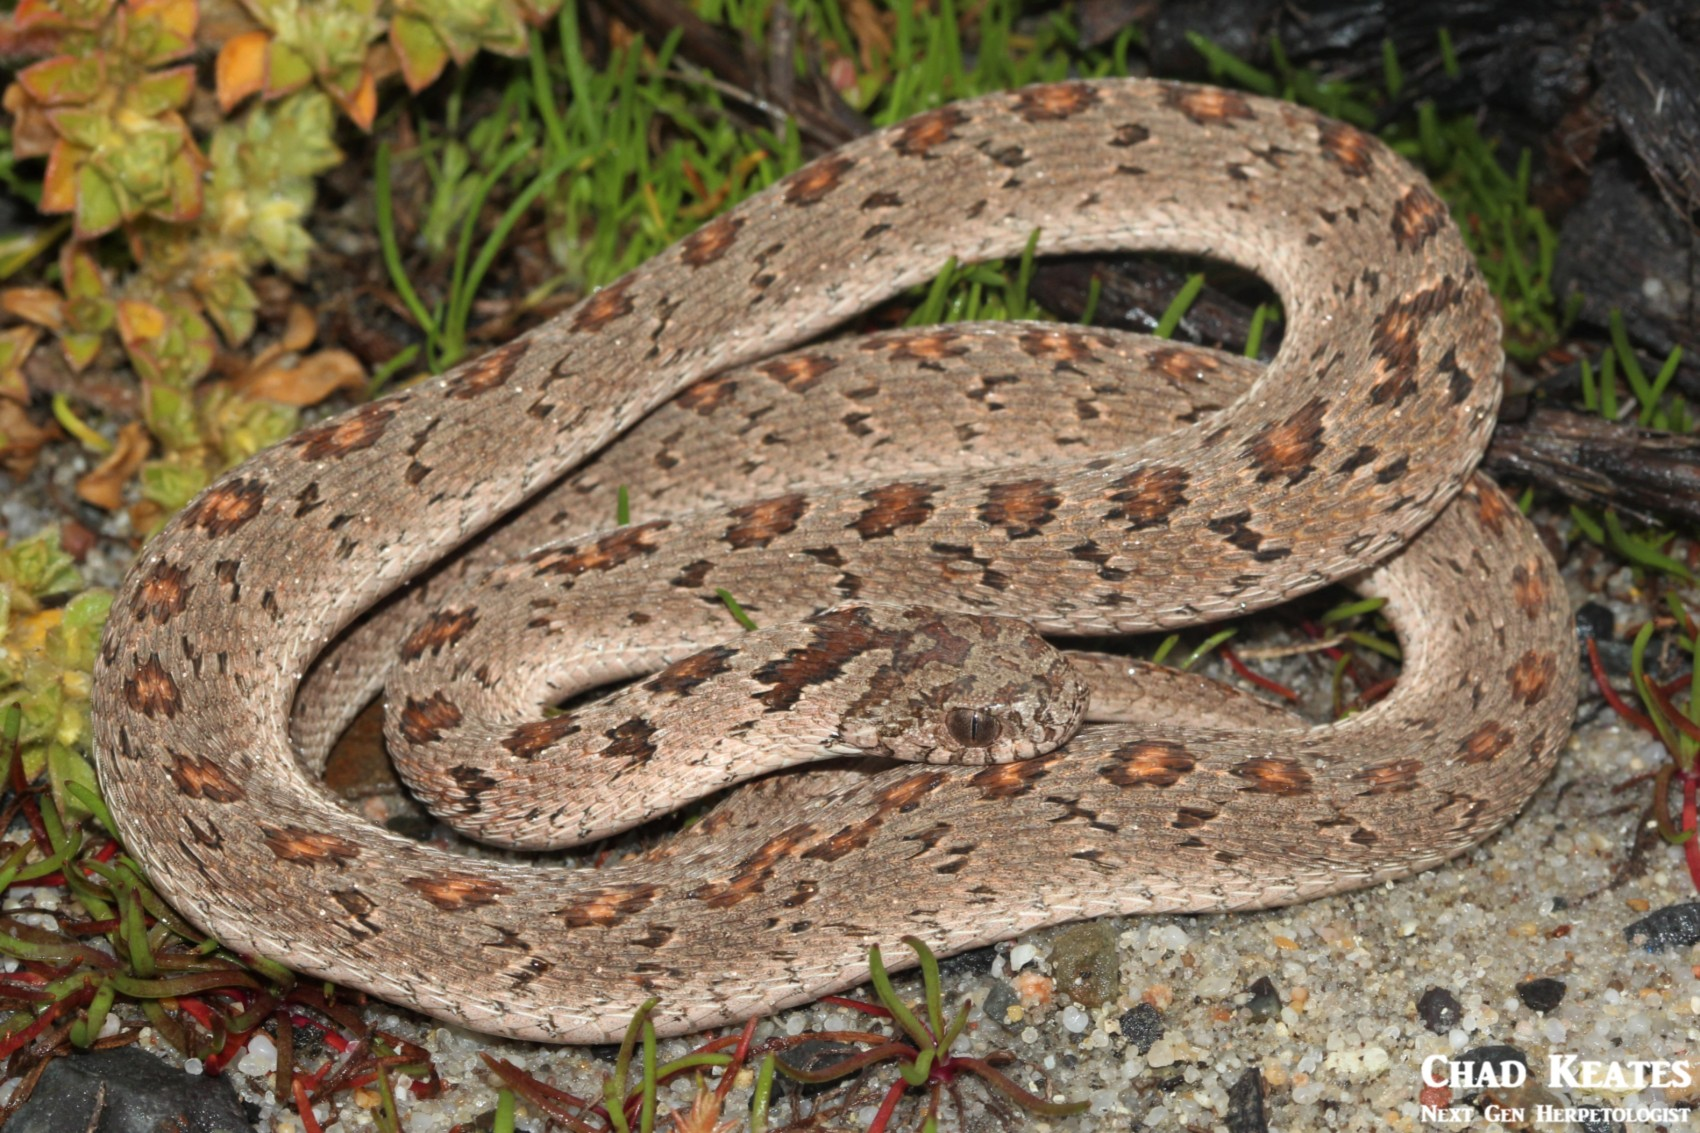 Dasypeltis_scabra_Rhombic_Egg-eater_Chad_Keates